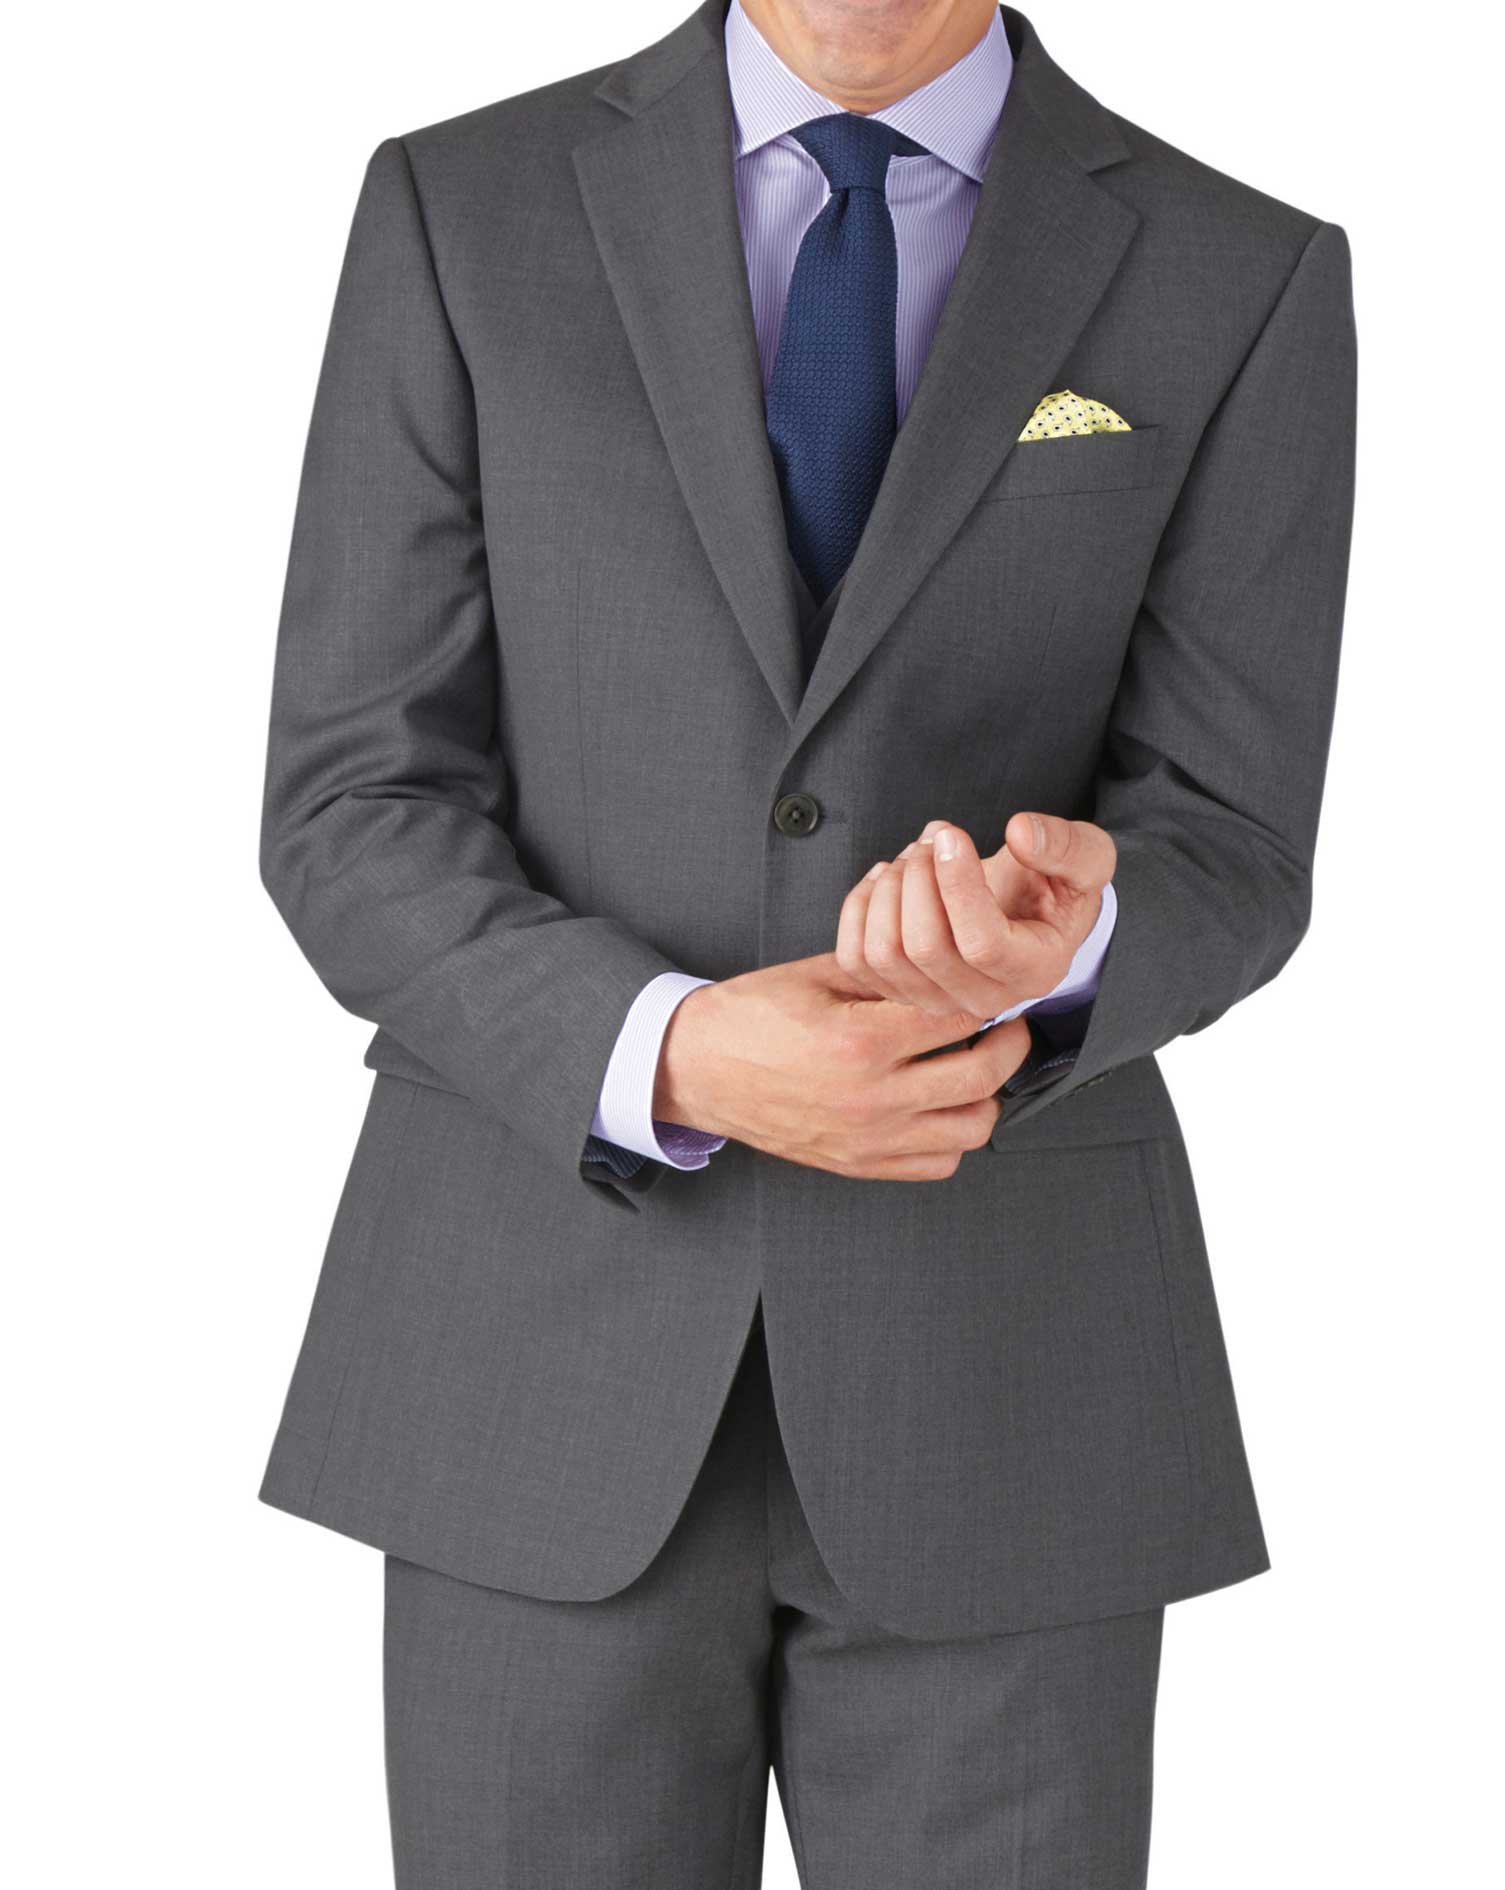 Mid Grey Classic Fit Twill Business Suit Wool Jacket Size 46 Regular by Charles Tyrwhitt